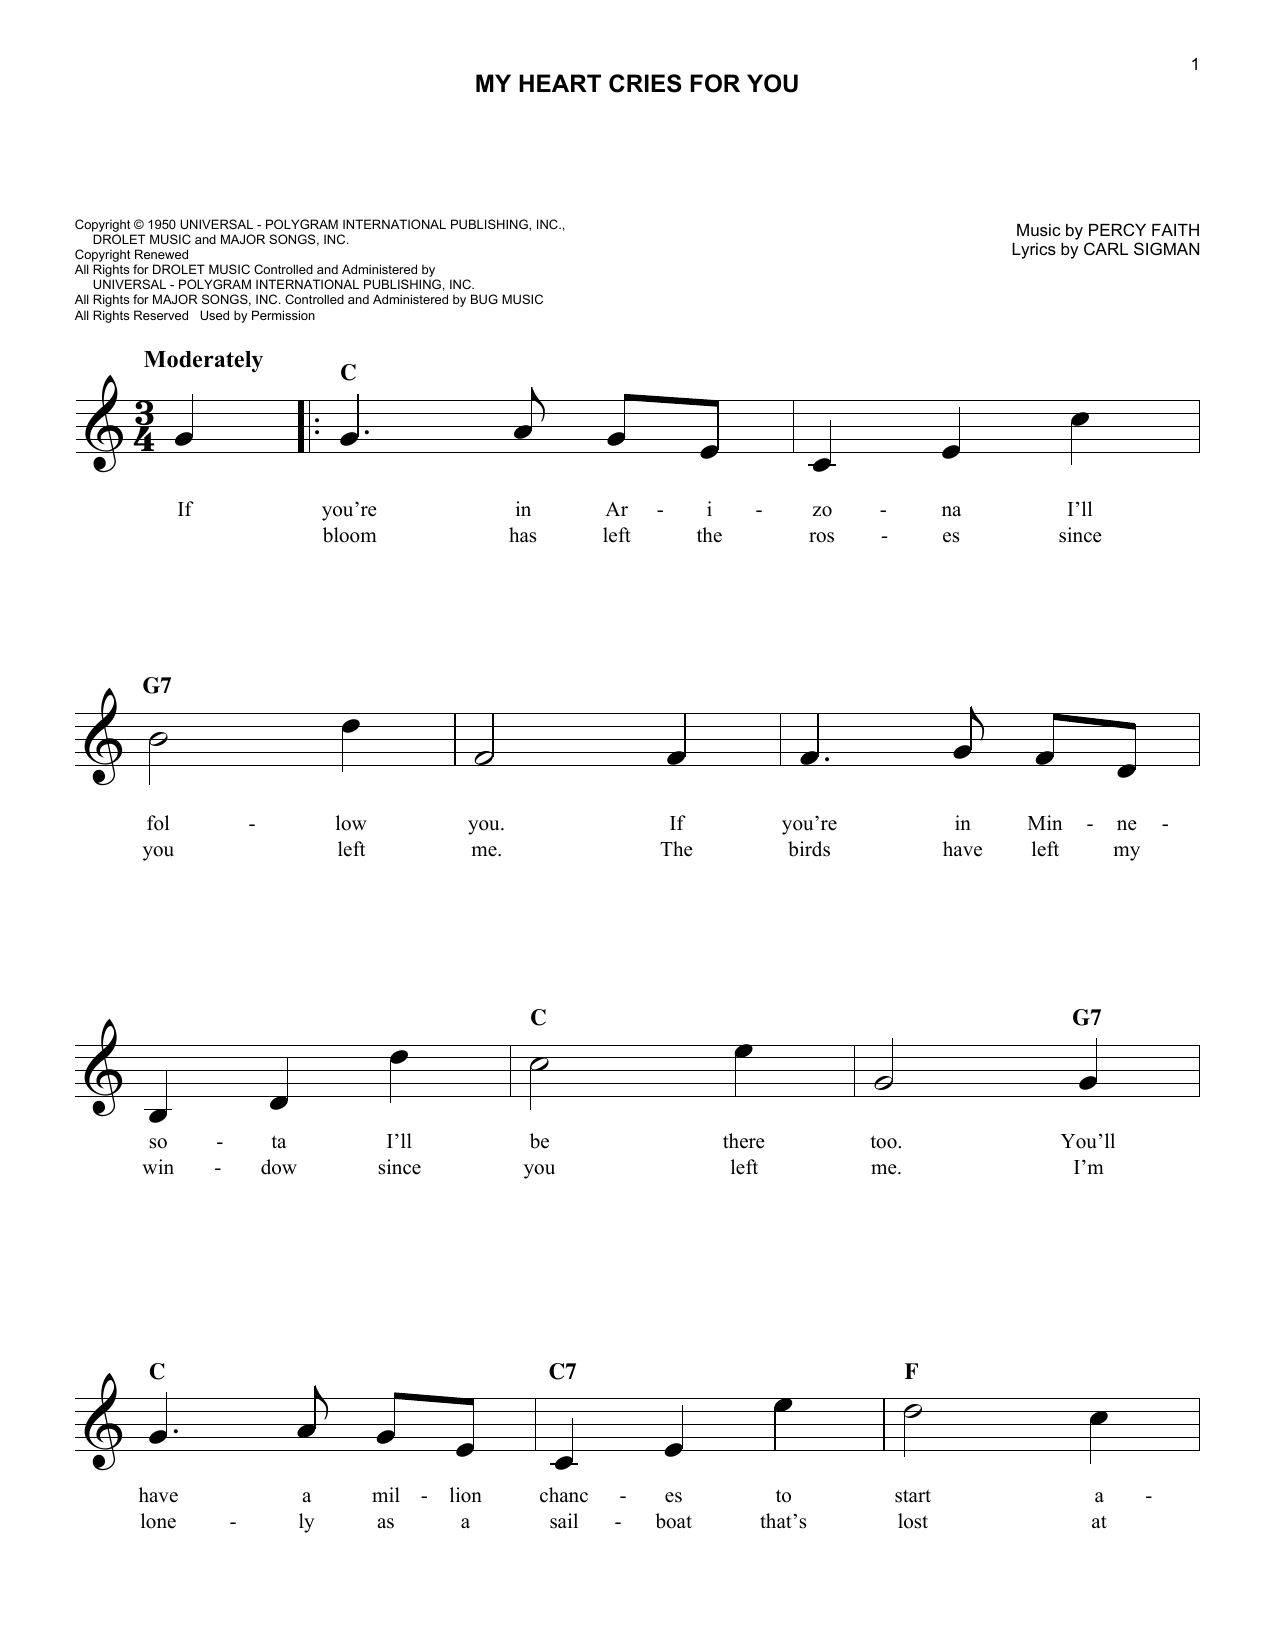 My Heart Cries For You Sheet Music